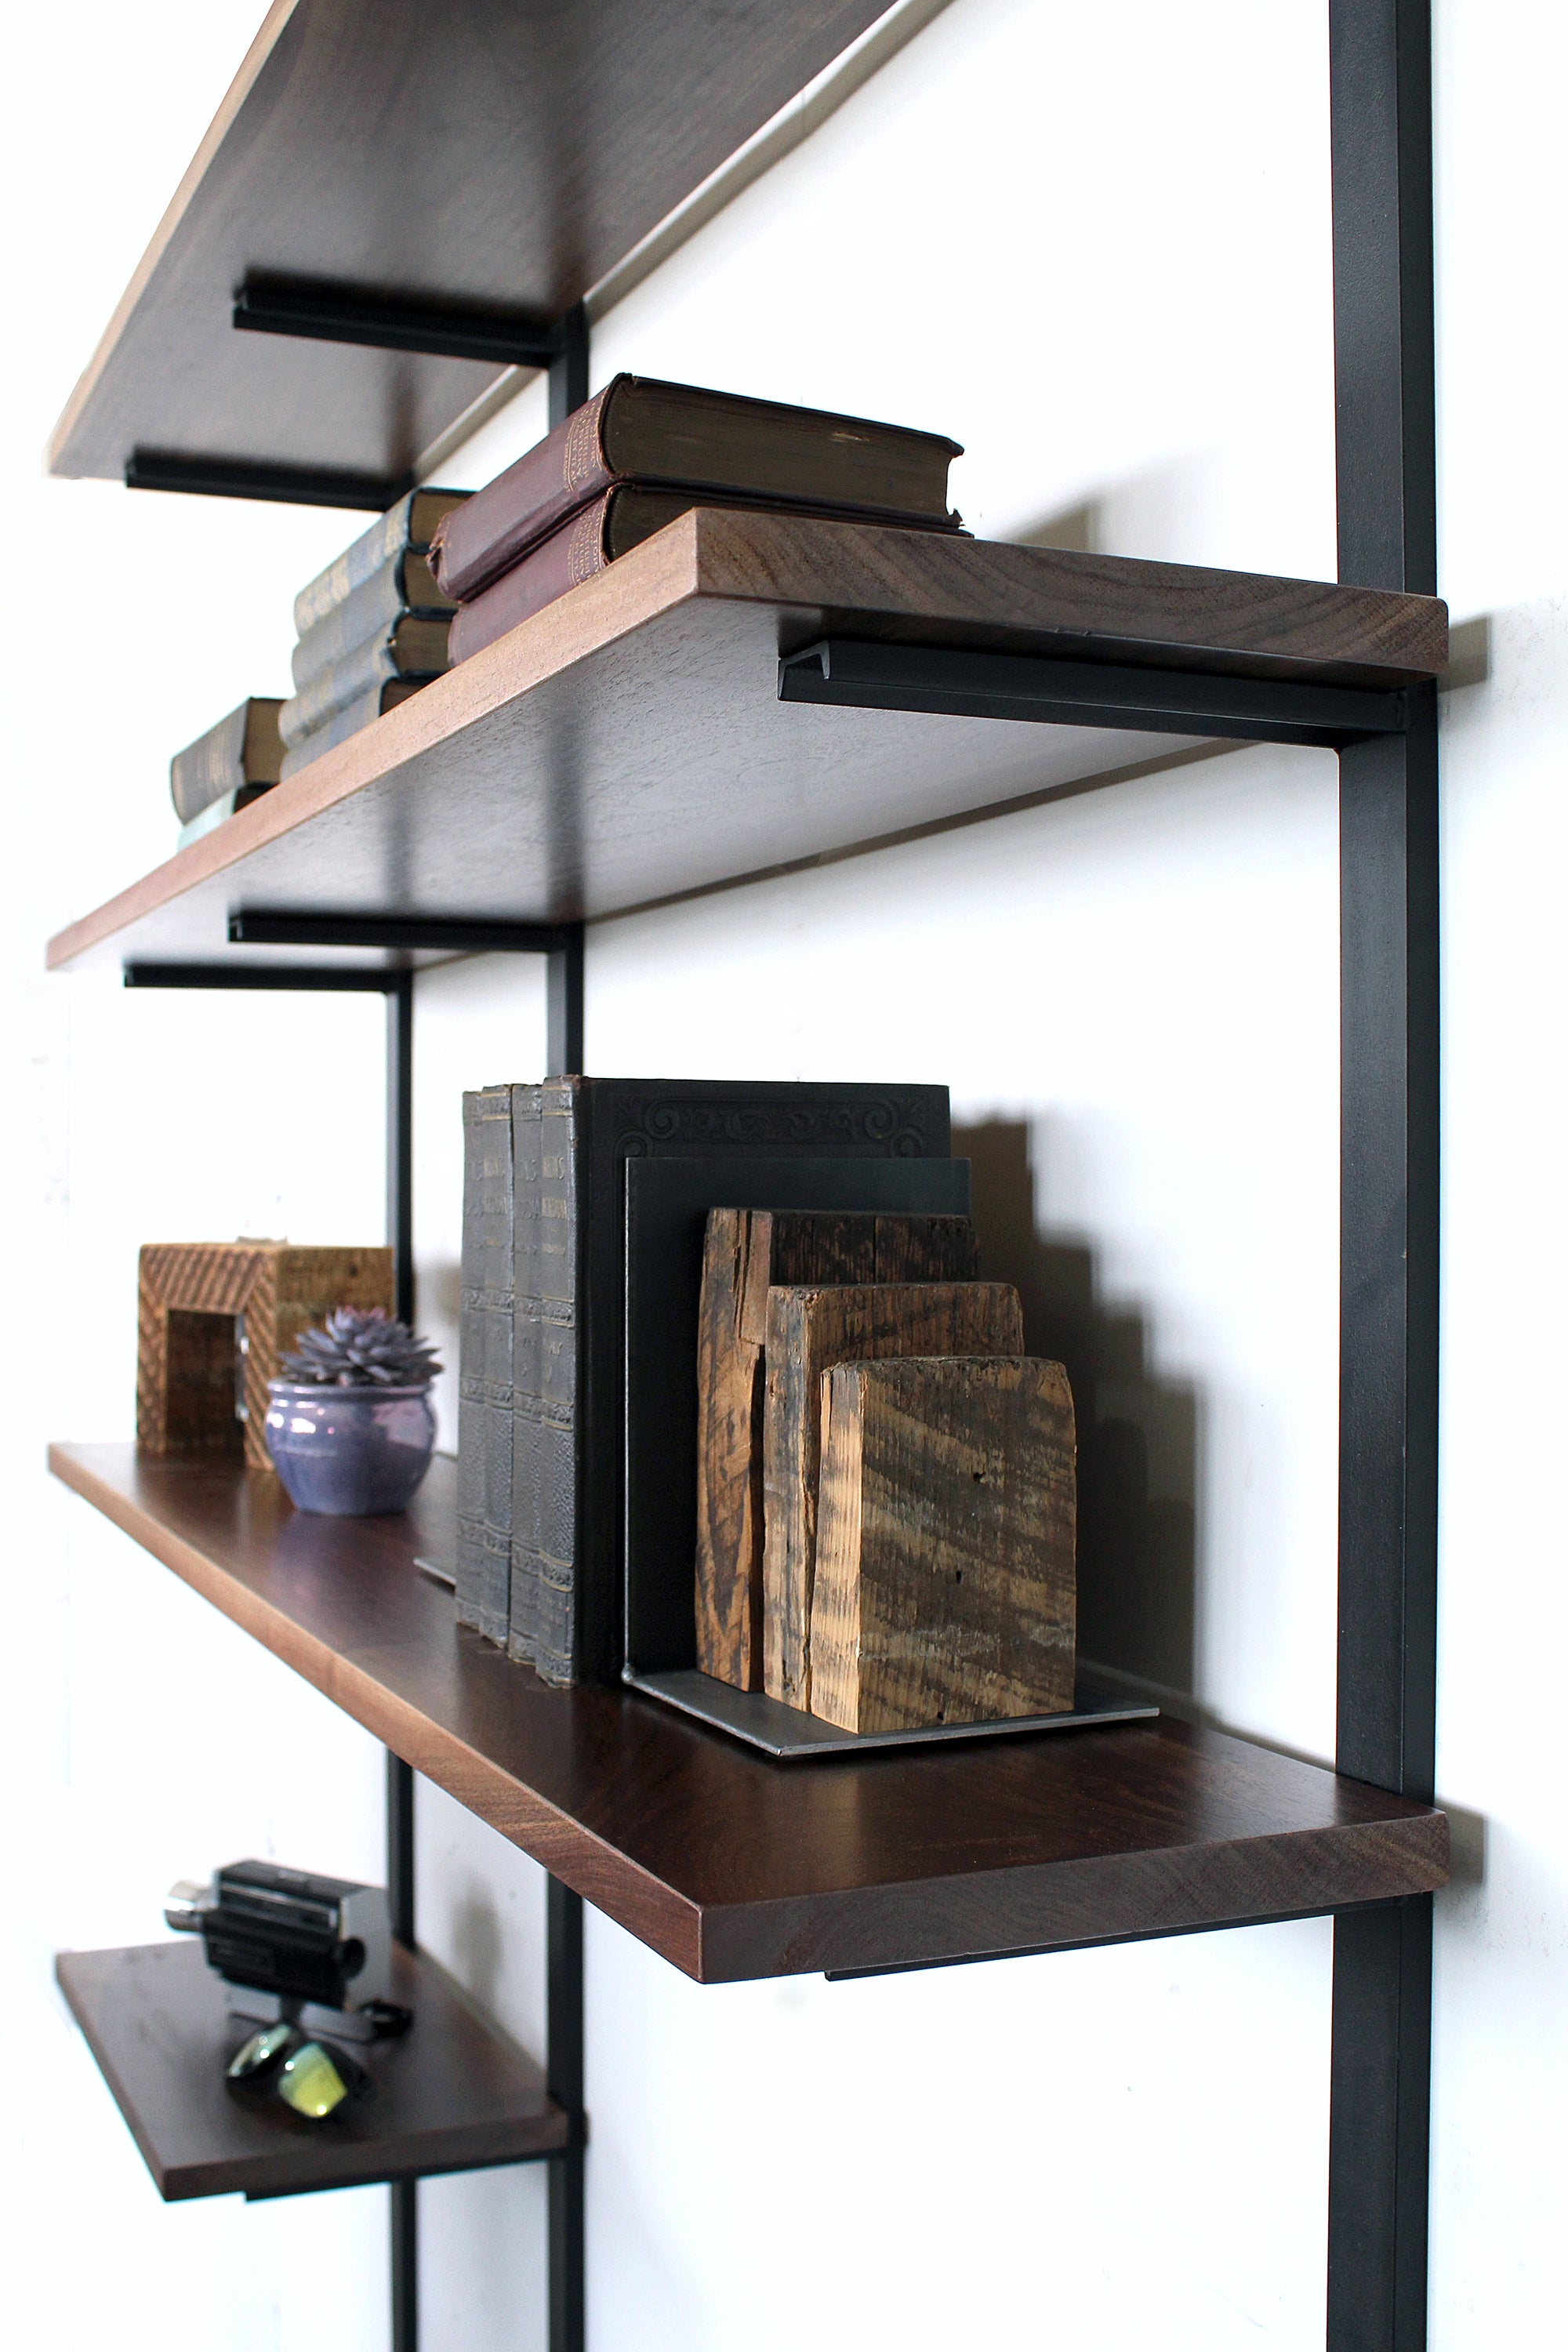 wall-mount-shelving_shelving-unit_modern-home-office_small-space-office_mid-century-desk